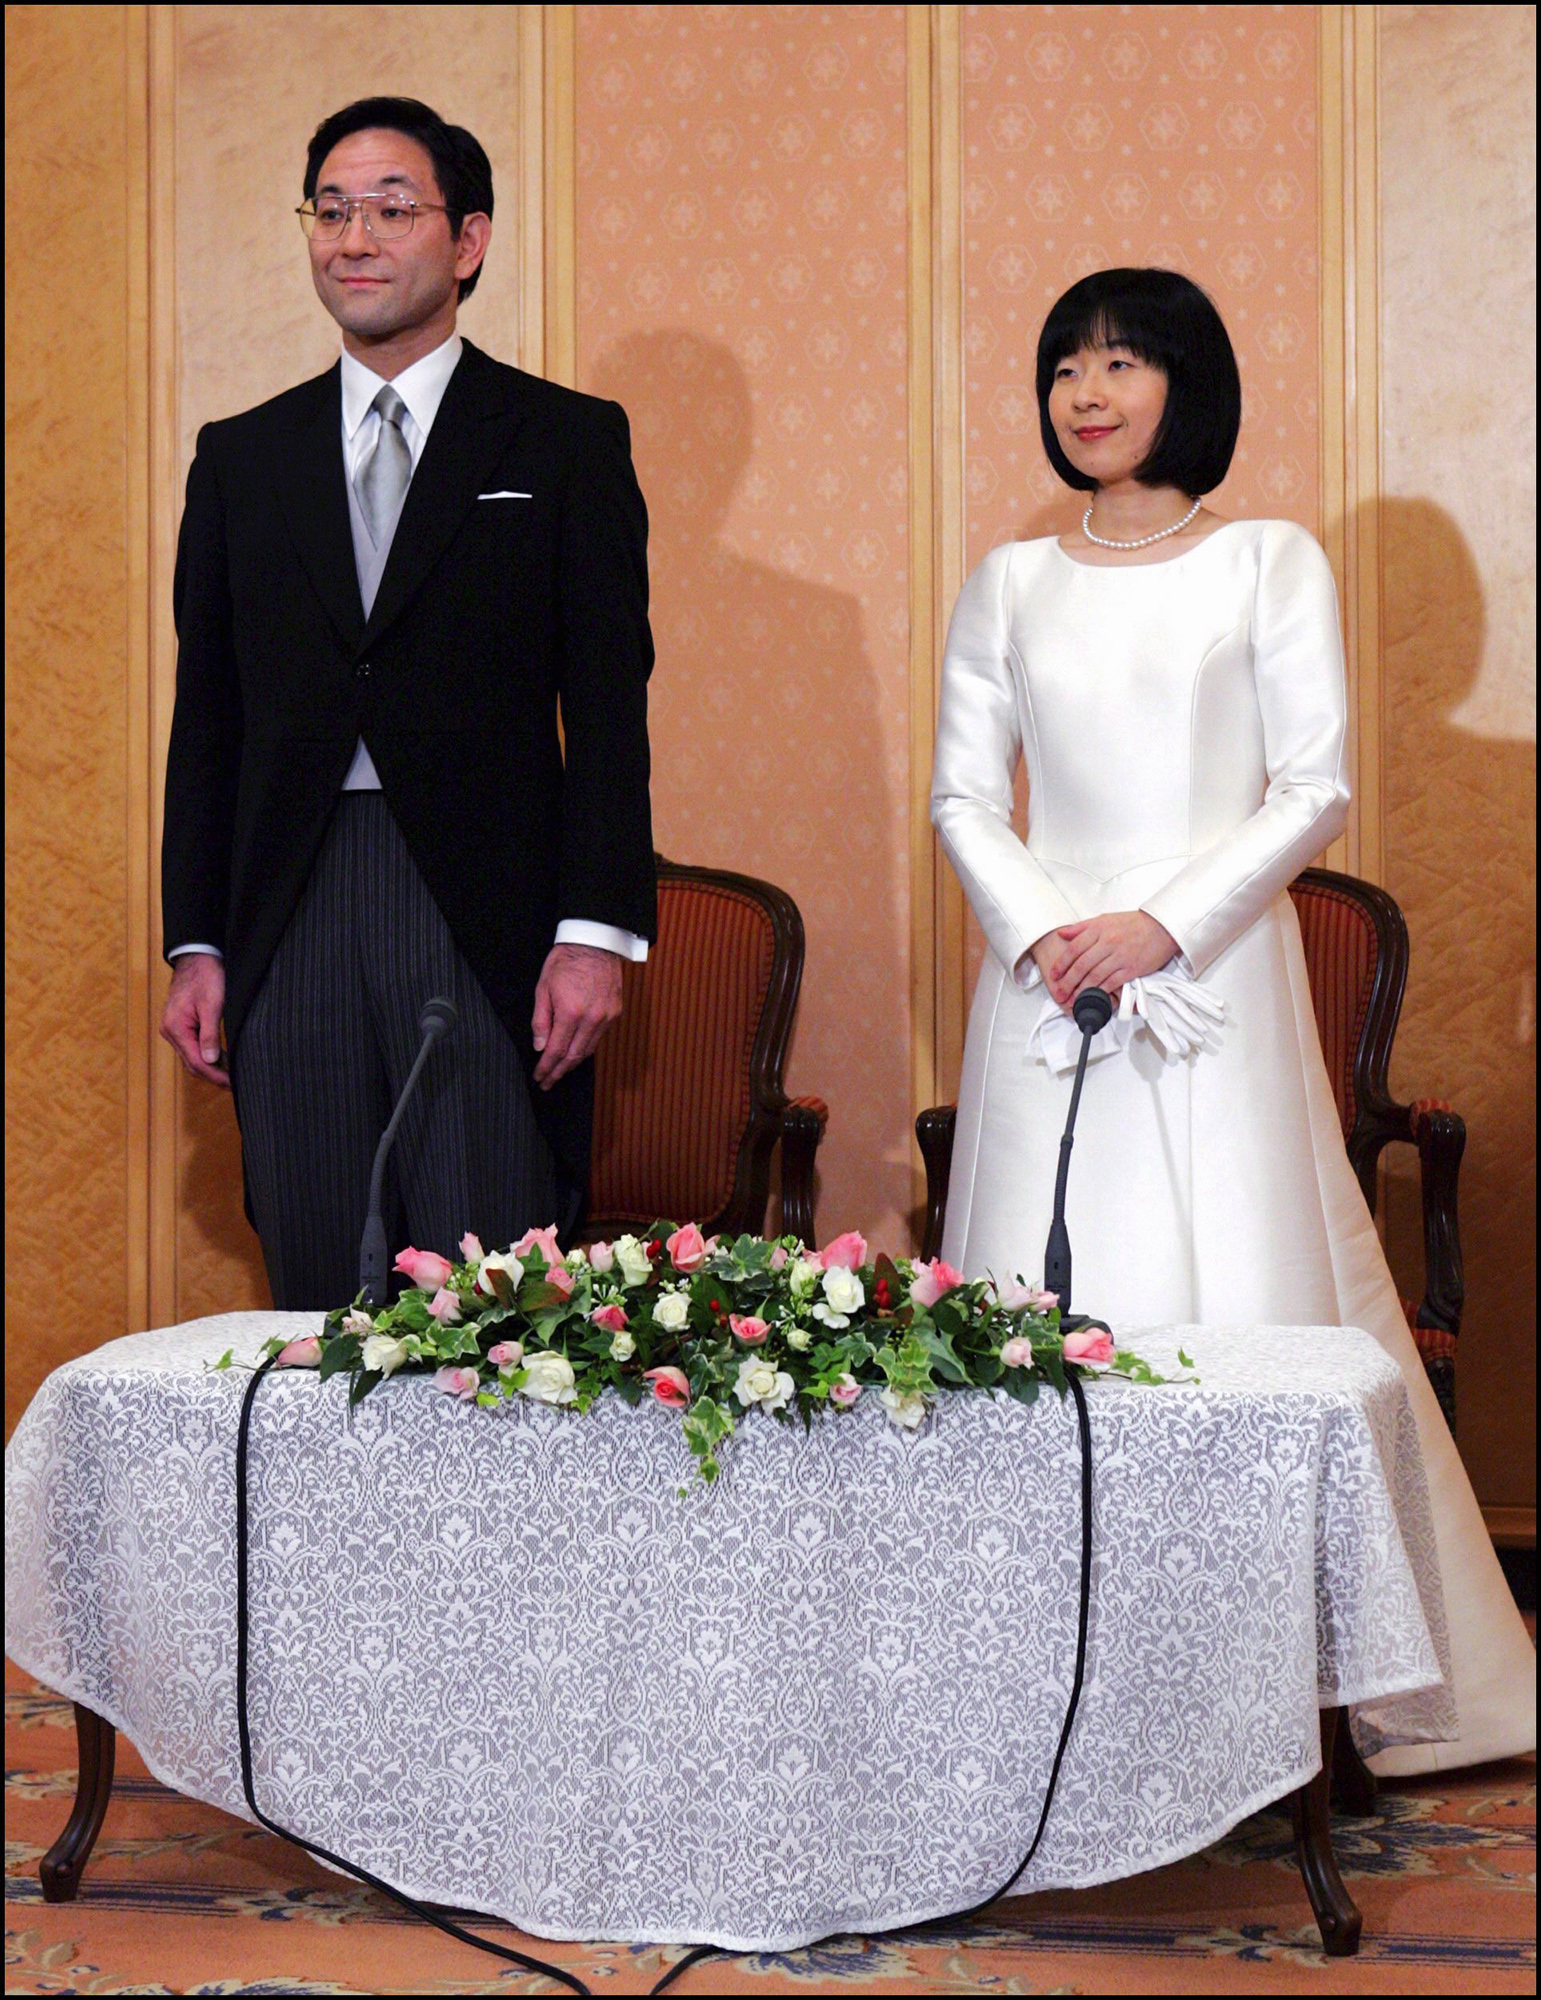 Japan's Emperor's youngest daughter Sayako speaks to reporters after her wedding ceremony in Tokyo, Japan On November 15, 2005 -